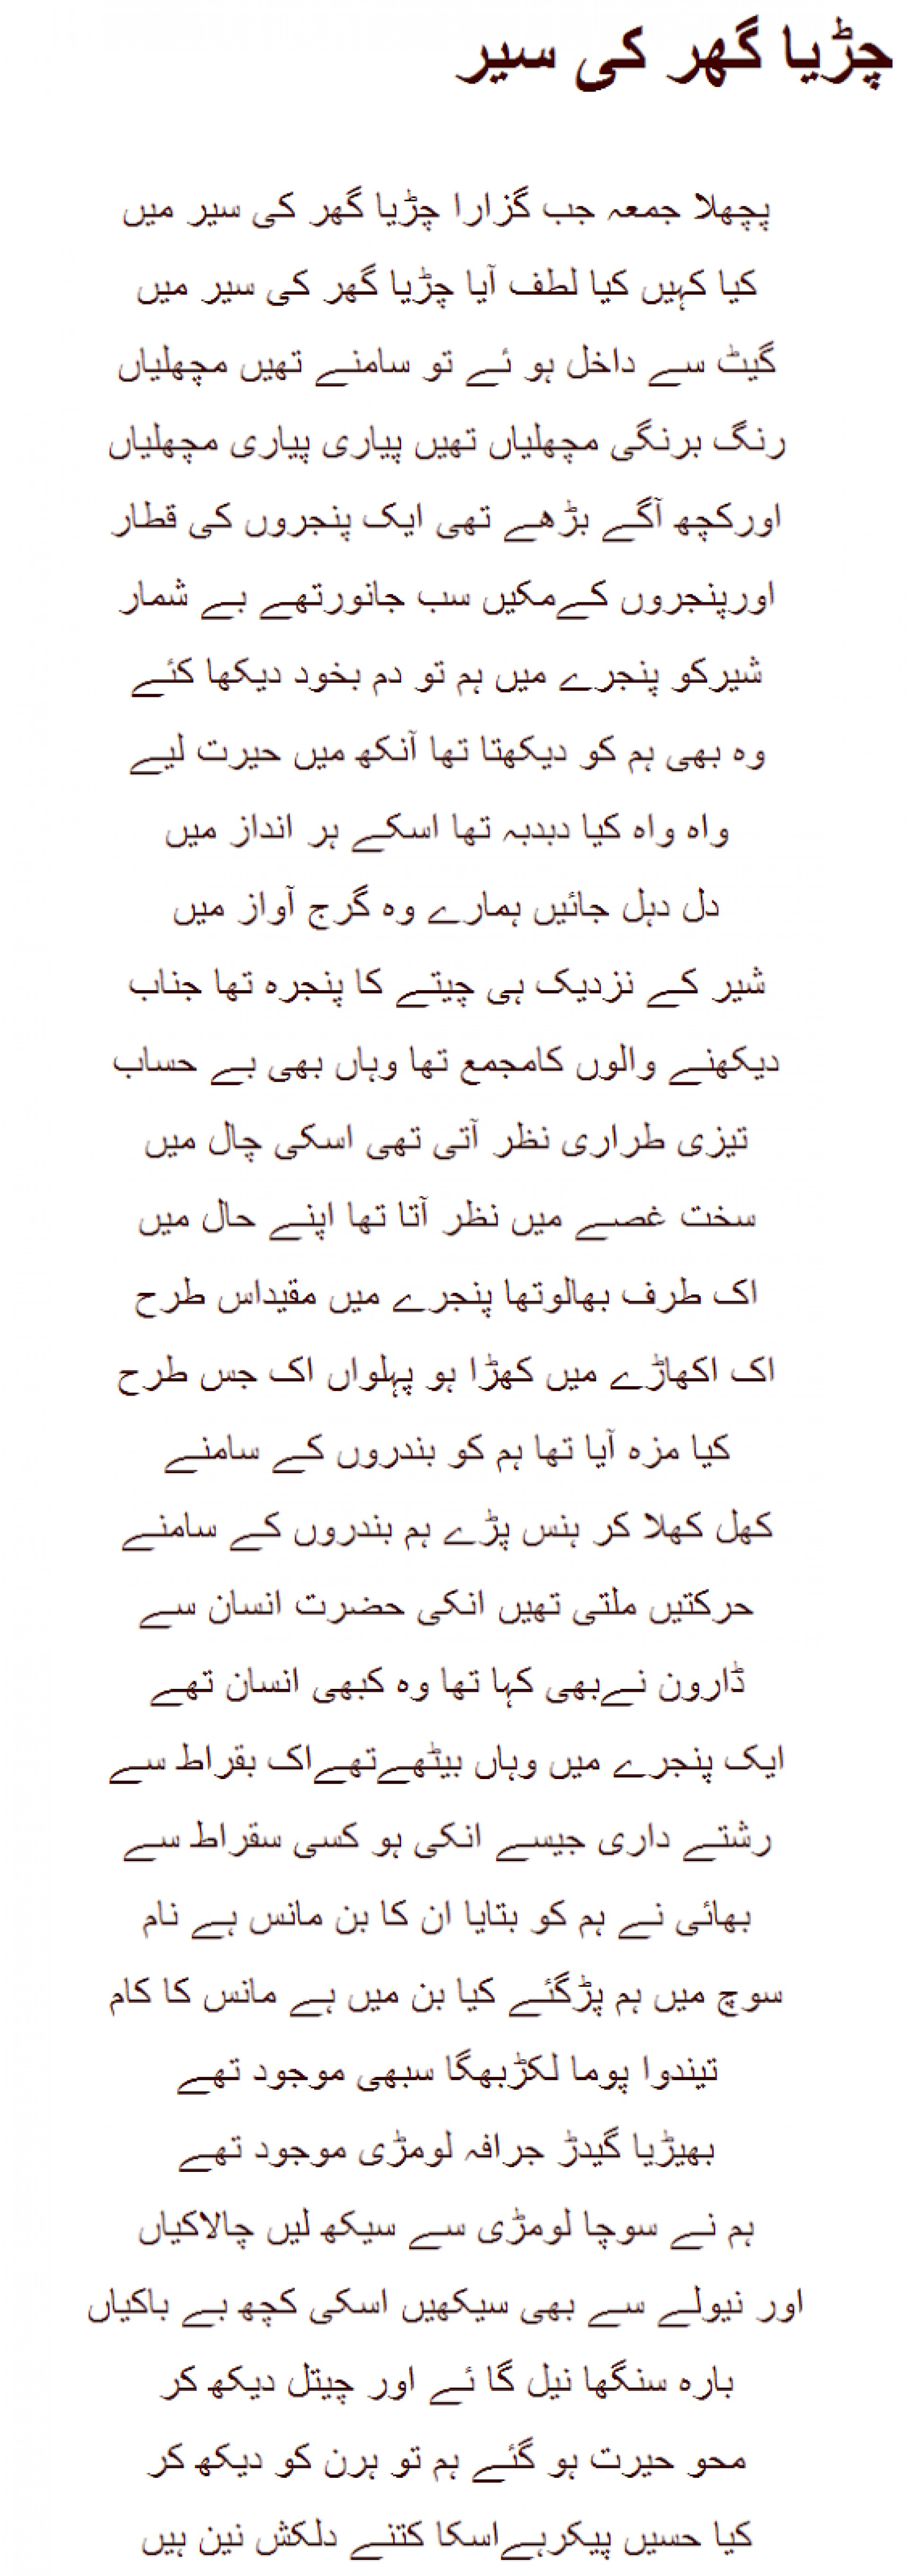 008 Women Empowerment Essay Zoo20shayari20in20urdu Exceptional Pdf Gender Equality And Women's 1920